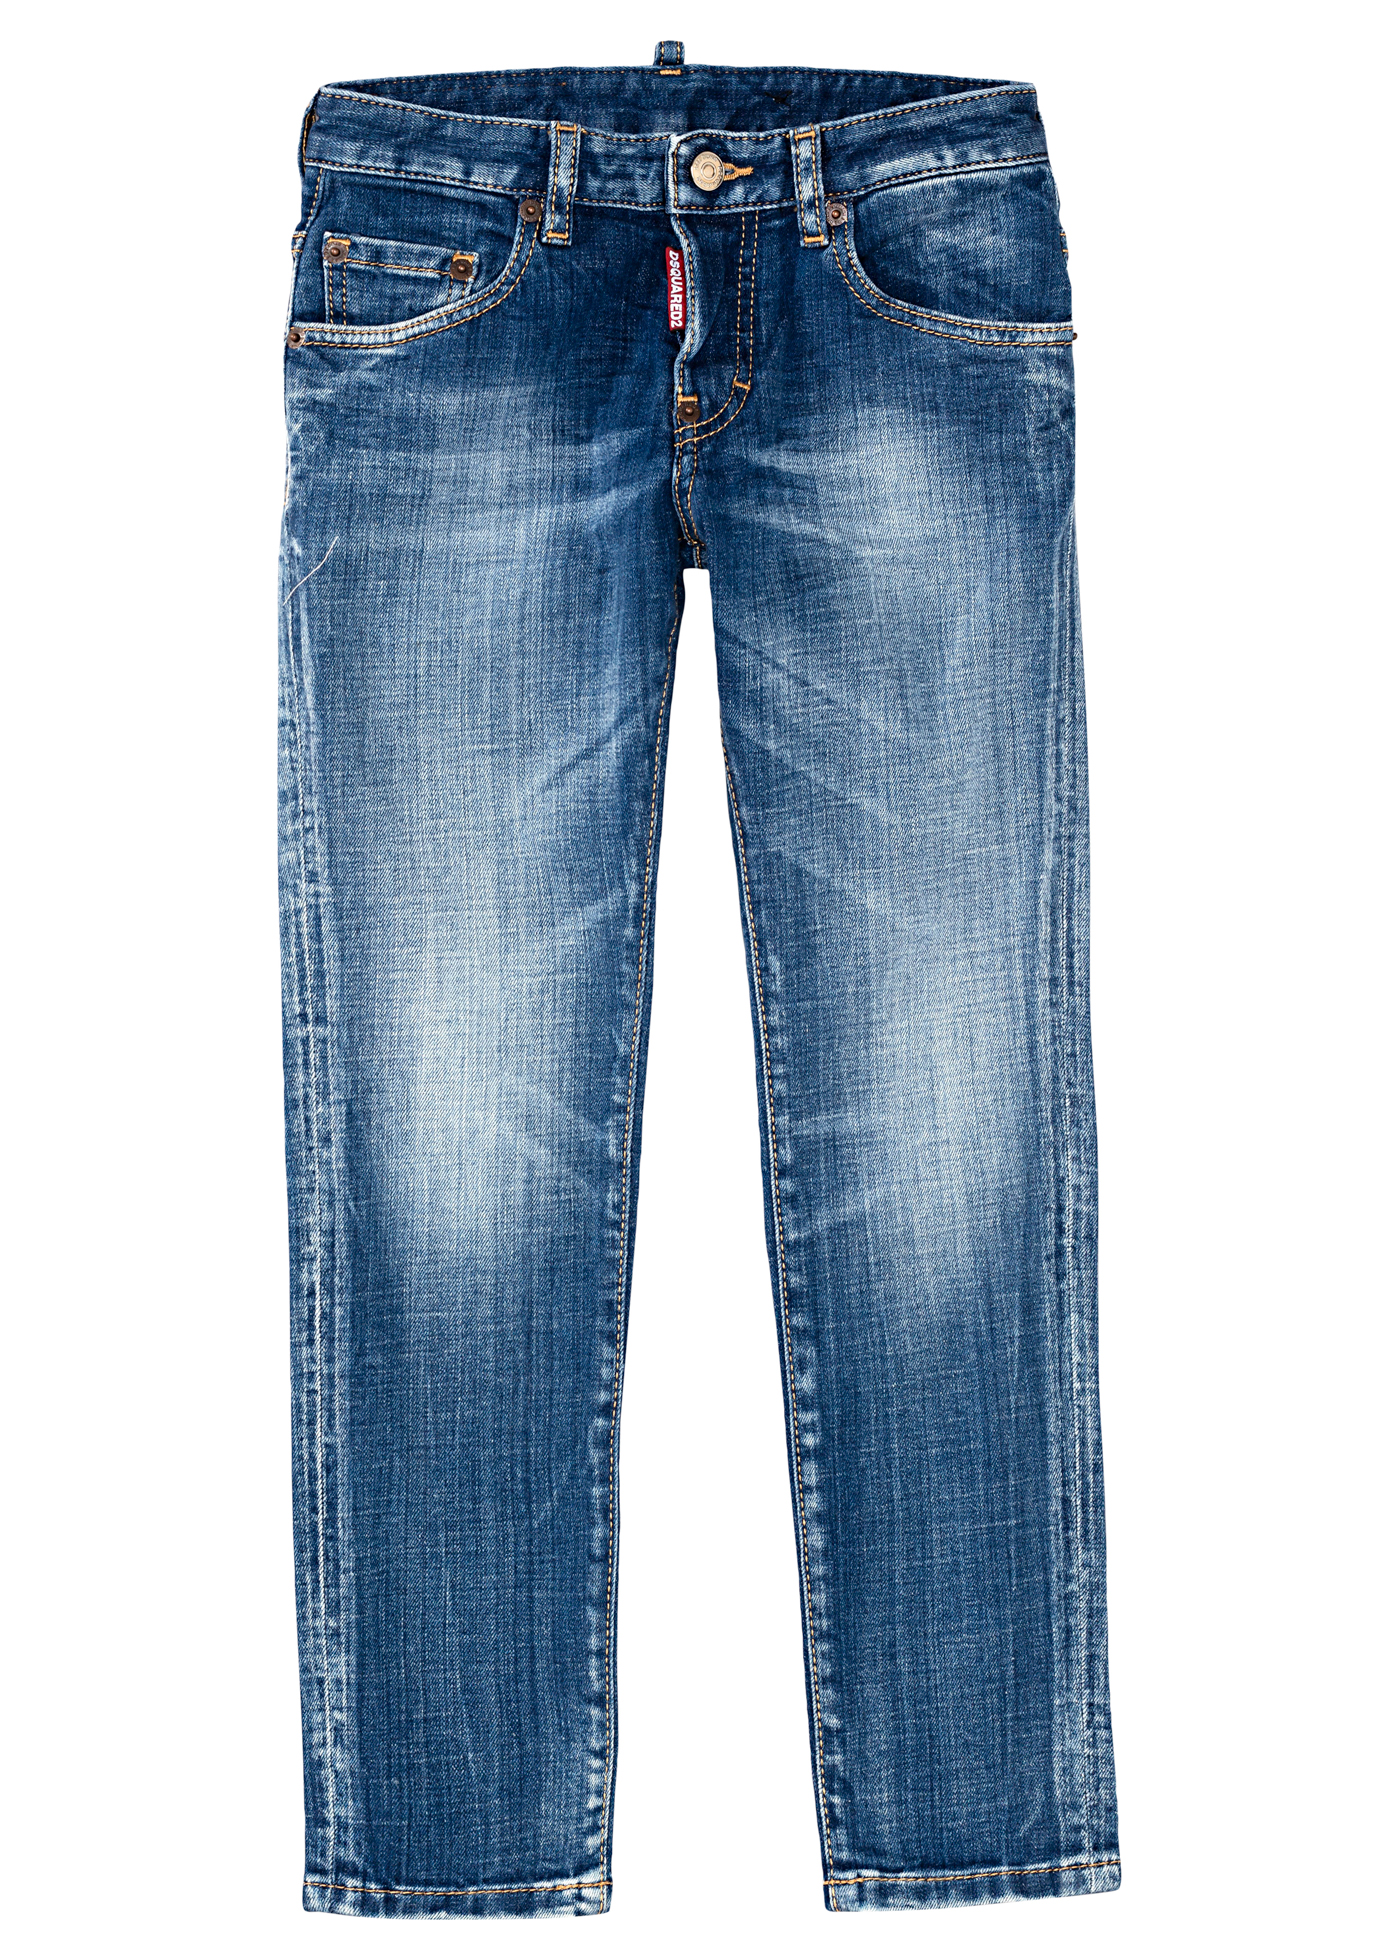 SKATER JEAN TROUSERS image number 0